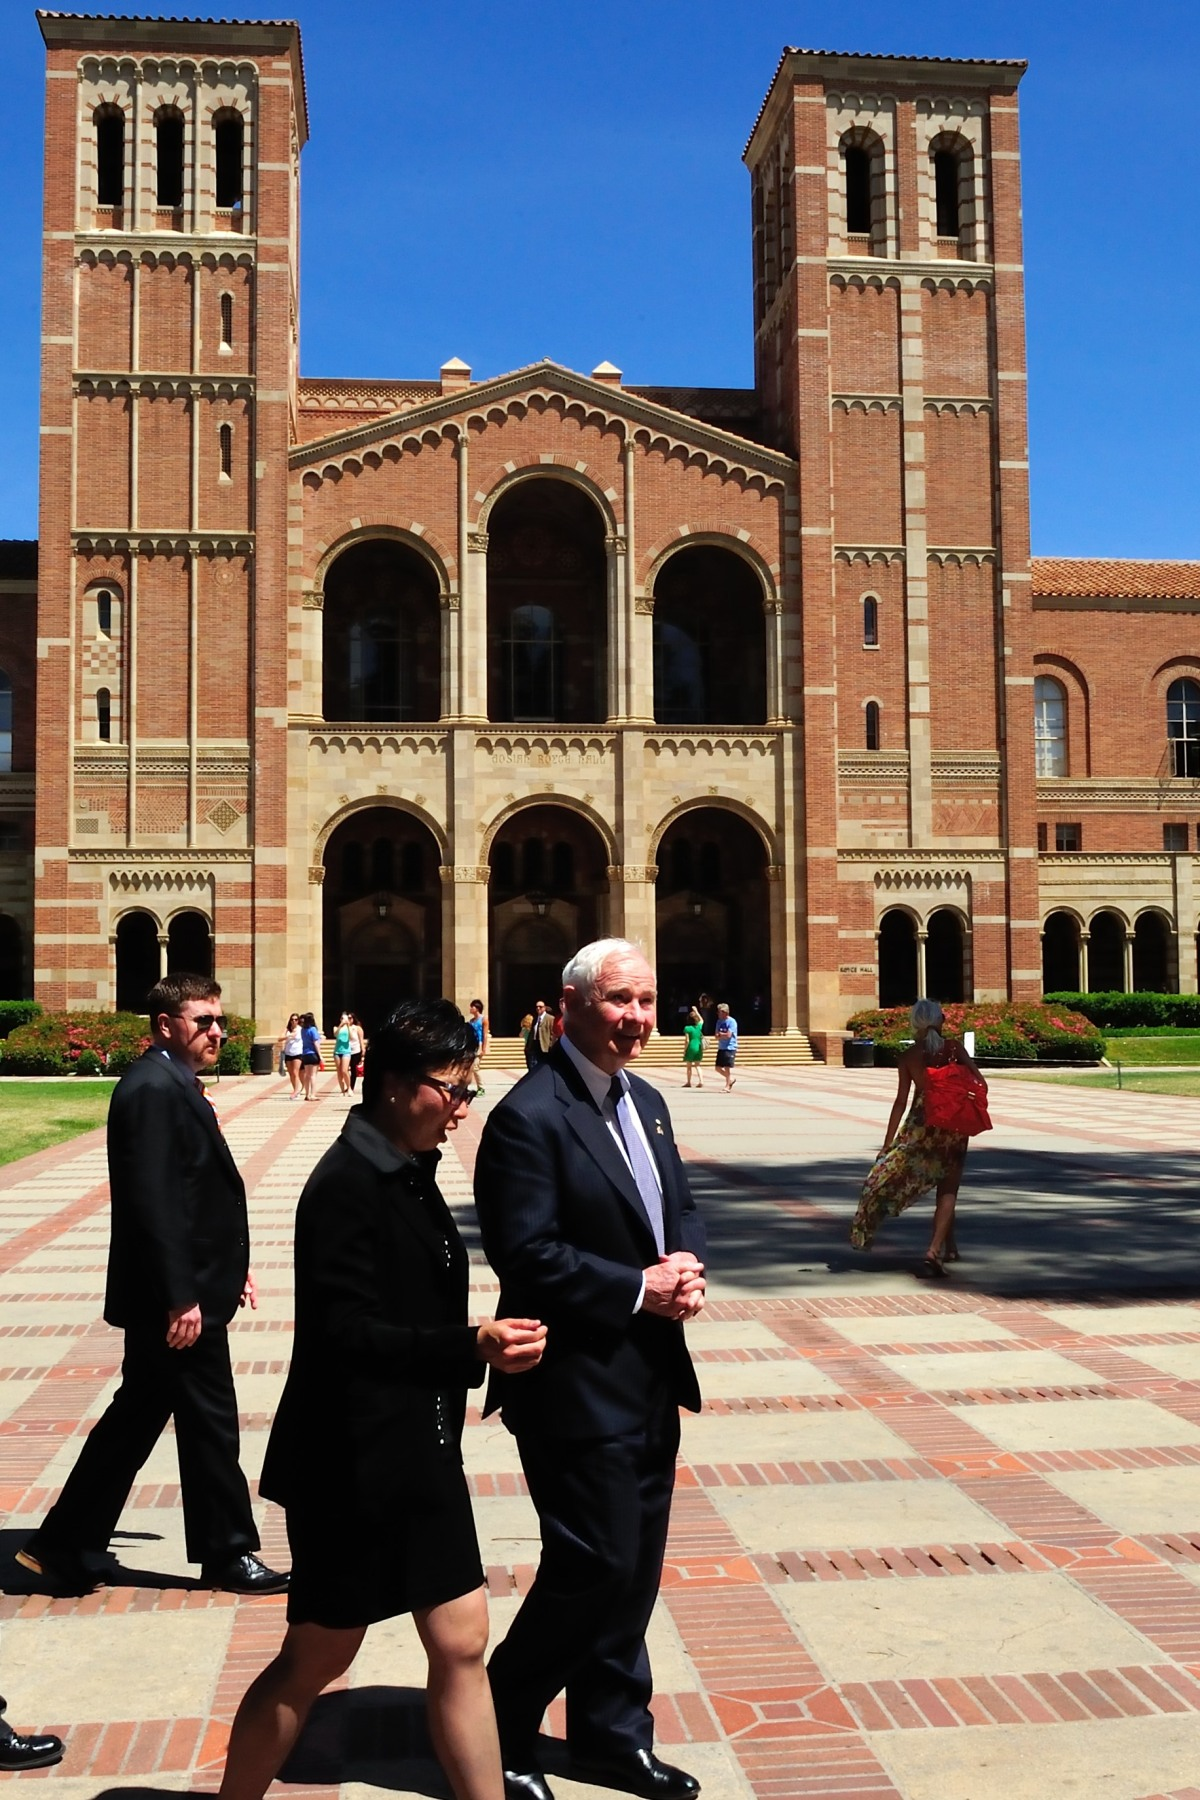 The Governor General joined by Cindy Fan, Vice-Provost of International Studies at UCLA, toured the campus and discussed the university's relationship with Canada. In April 2012, the International Institute, under the leadership of Mrs. Fan, became the permanent administrative home for the Canadian Studies Program.